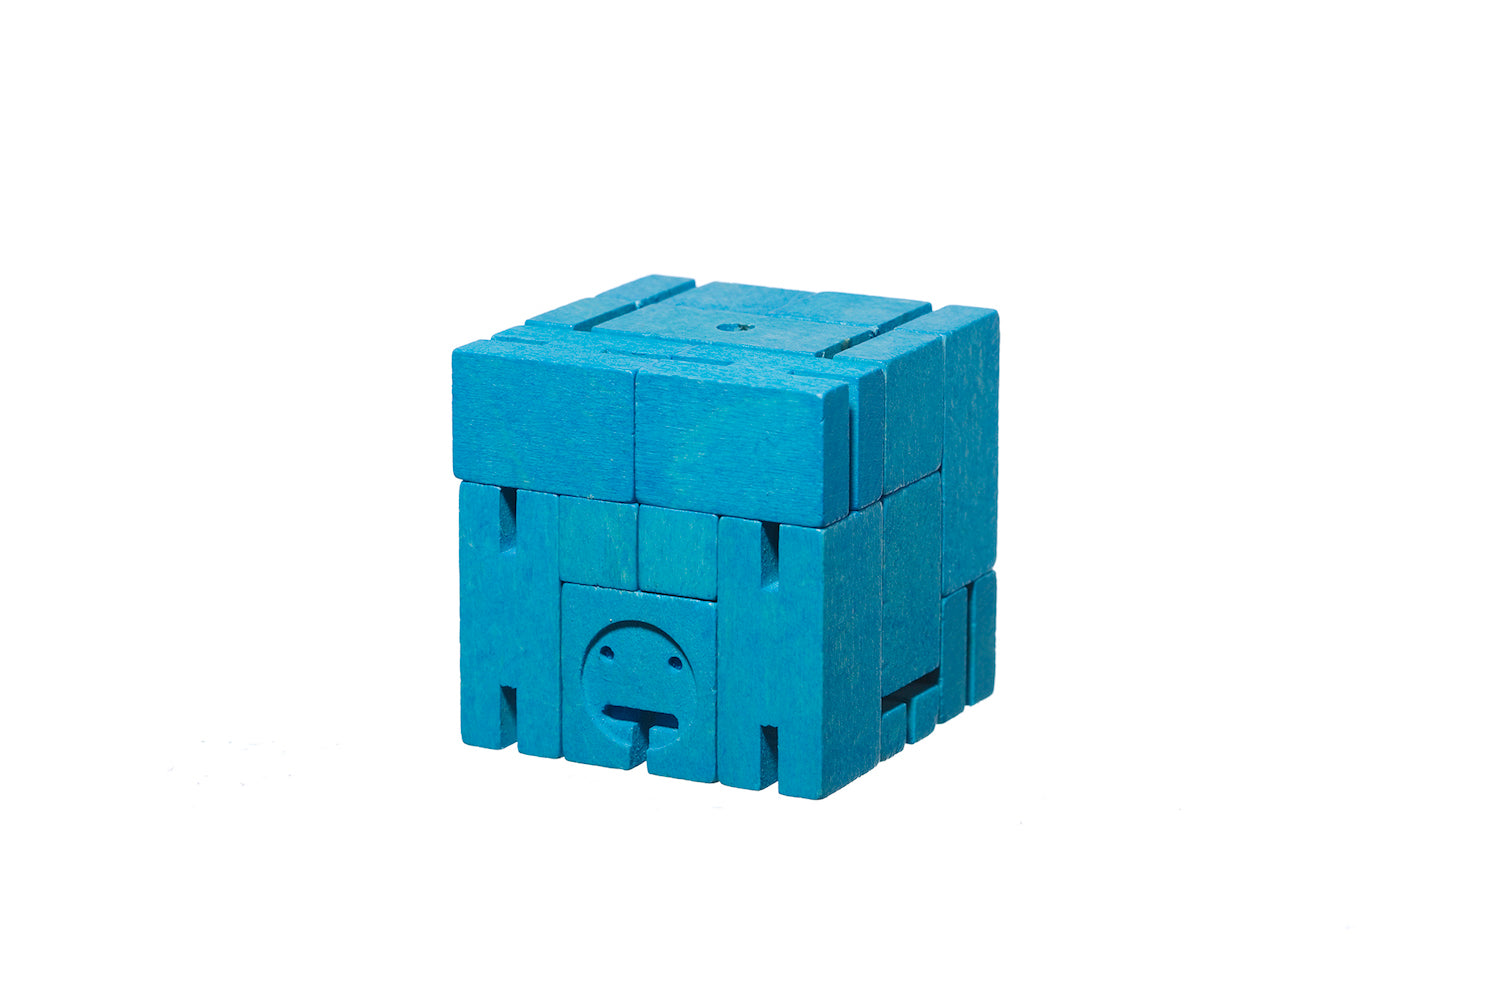 Cubebot - Small - Blue